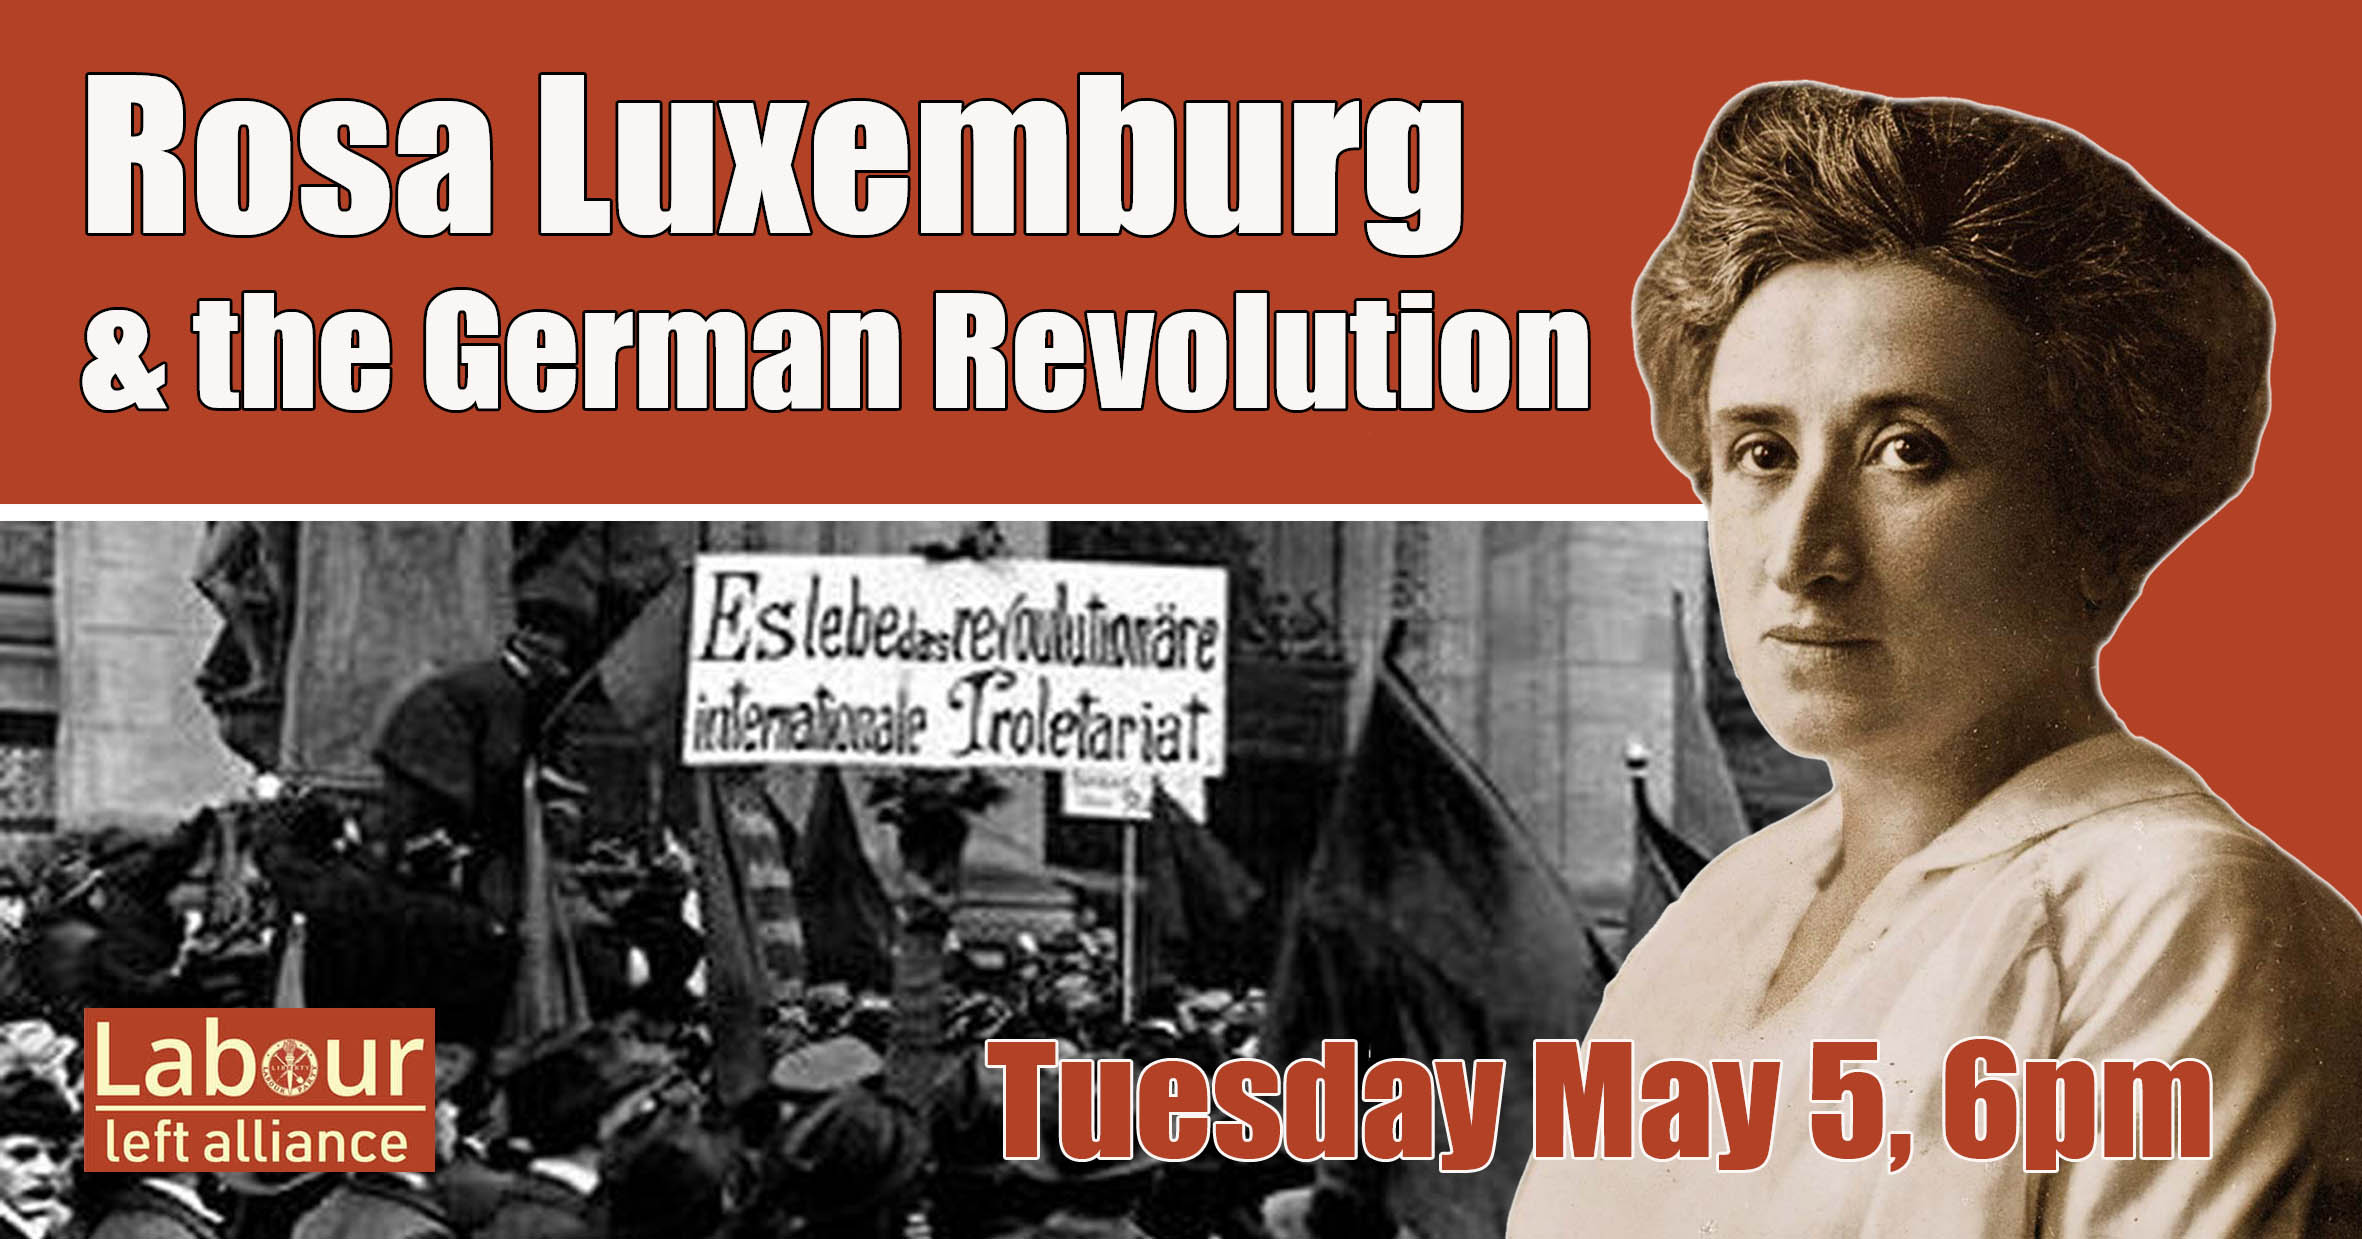 Rosa Luxemburg and the German Revolution